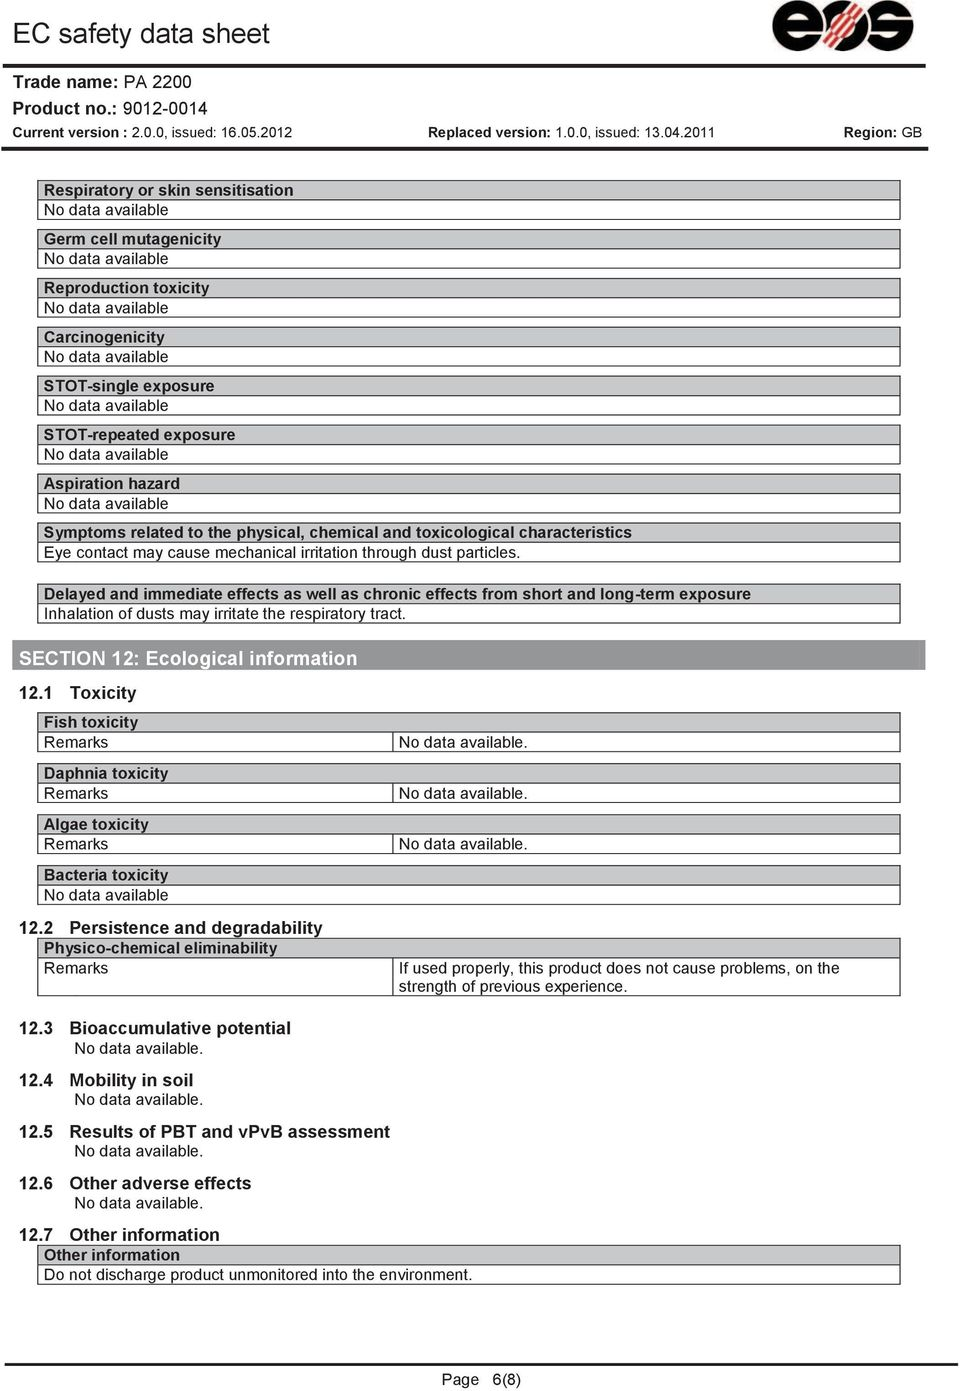 7008319 EC safety data sheet Respiratory or skin sensitisation Germ cell mutagenicity Reproduction toxicity Carcinogenicity STOT-single exposure STOT-repeated exposure Aspiration hazard Symptoms